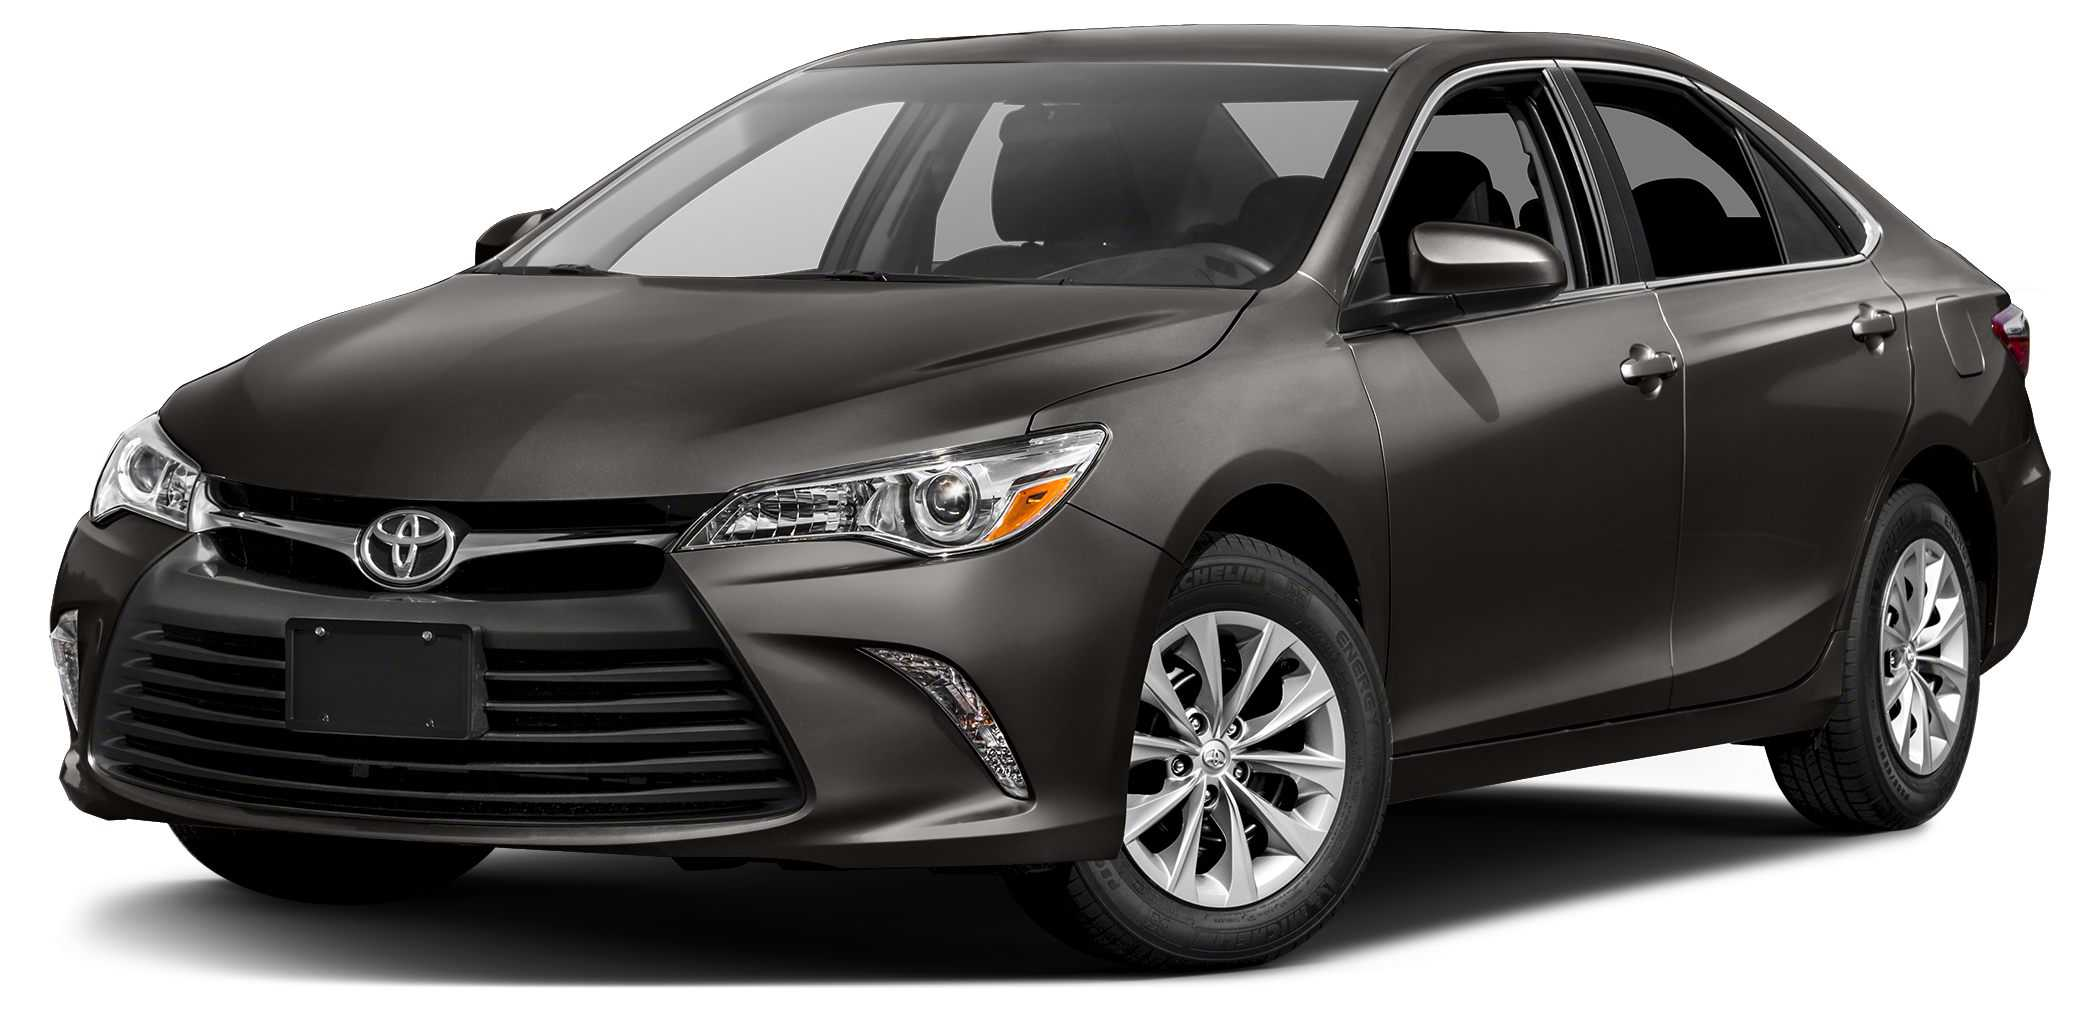 2017 toyota camry for sale in wallingford ct 4t1bf1fk5hu425686. Black Bedroom Furniture Sets. Home Design Ideas